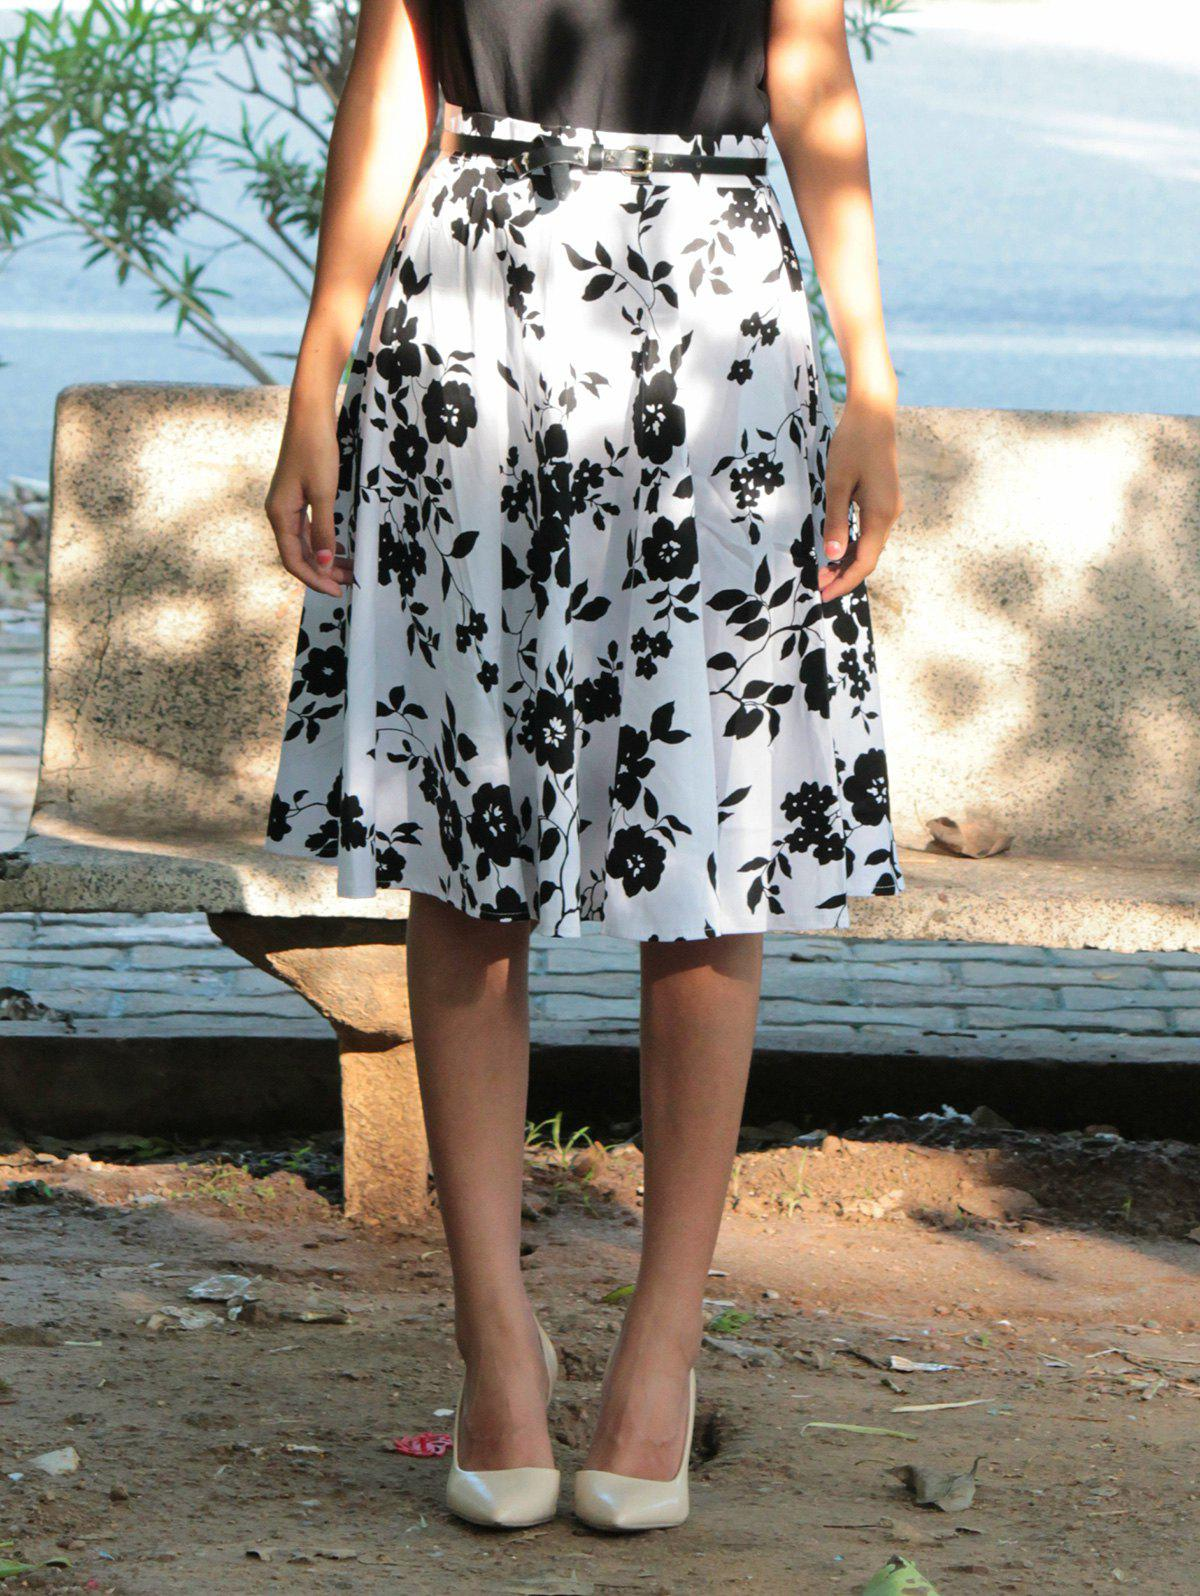 Vintage High-Waisted A-Line Floral Print Women's Skirt - WHITE/BLACK S